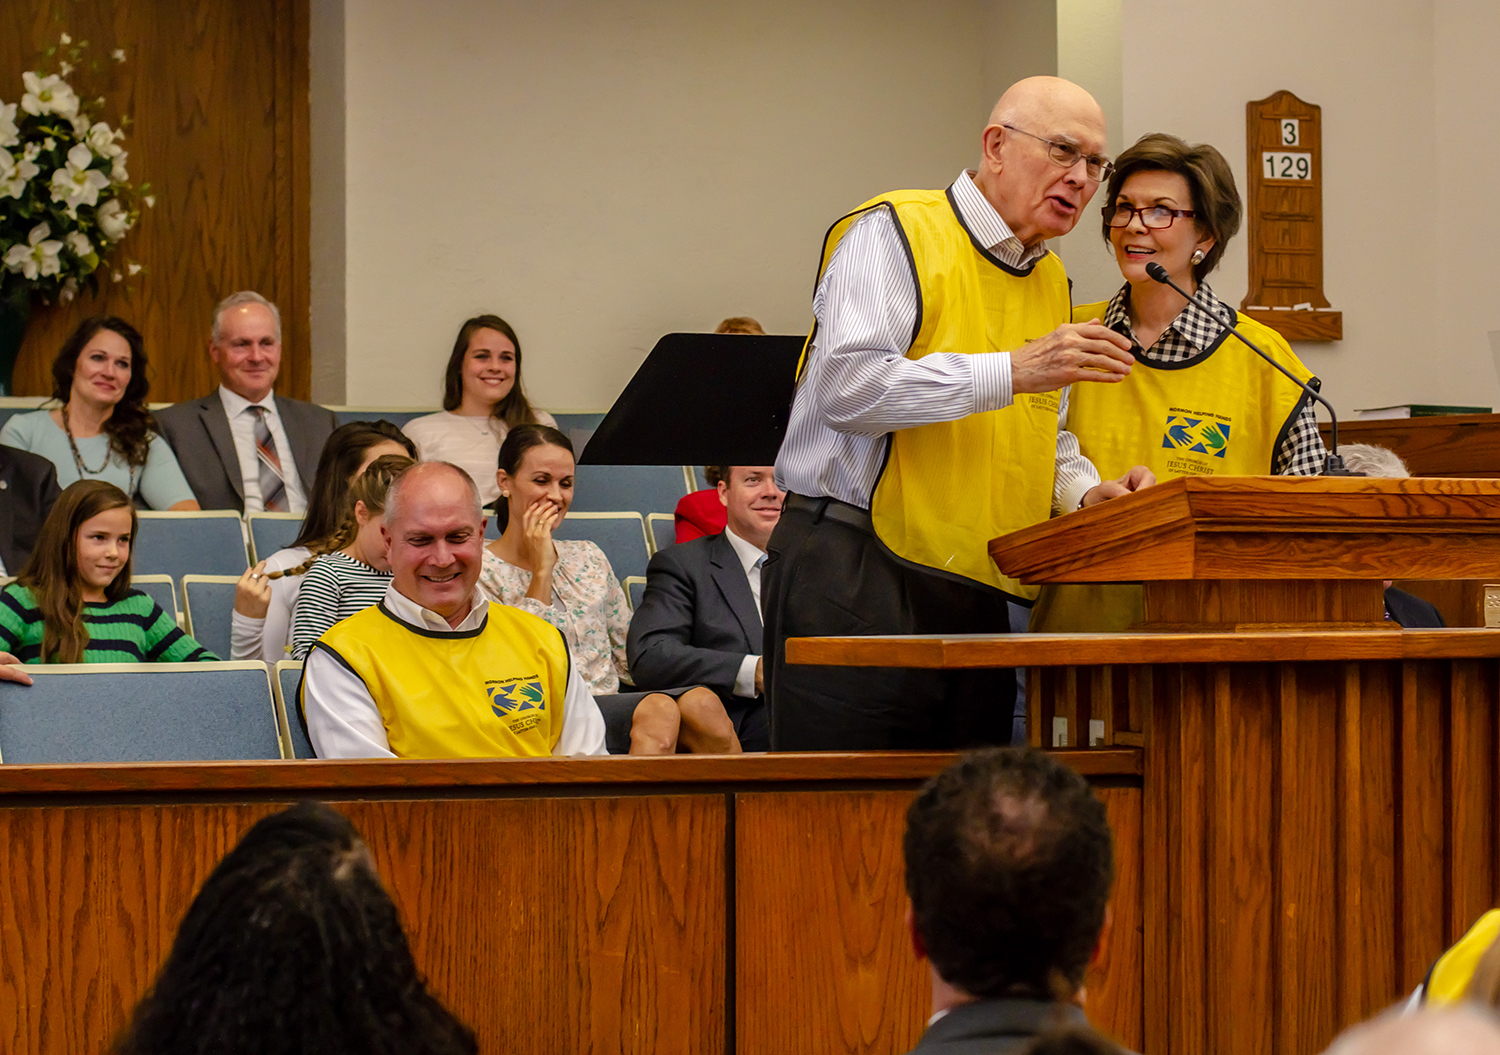 President Dallin H. Oaks, first counselor in the First Presidency of the Church, and his wife, Sister Kristen Oaks, speak to Latter-day Saints in North Carolina in the areas damaged by Hurricane Florence.